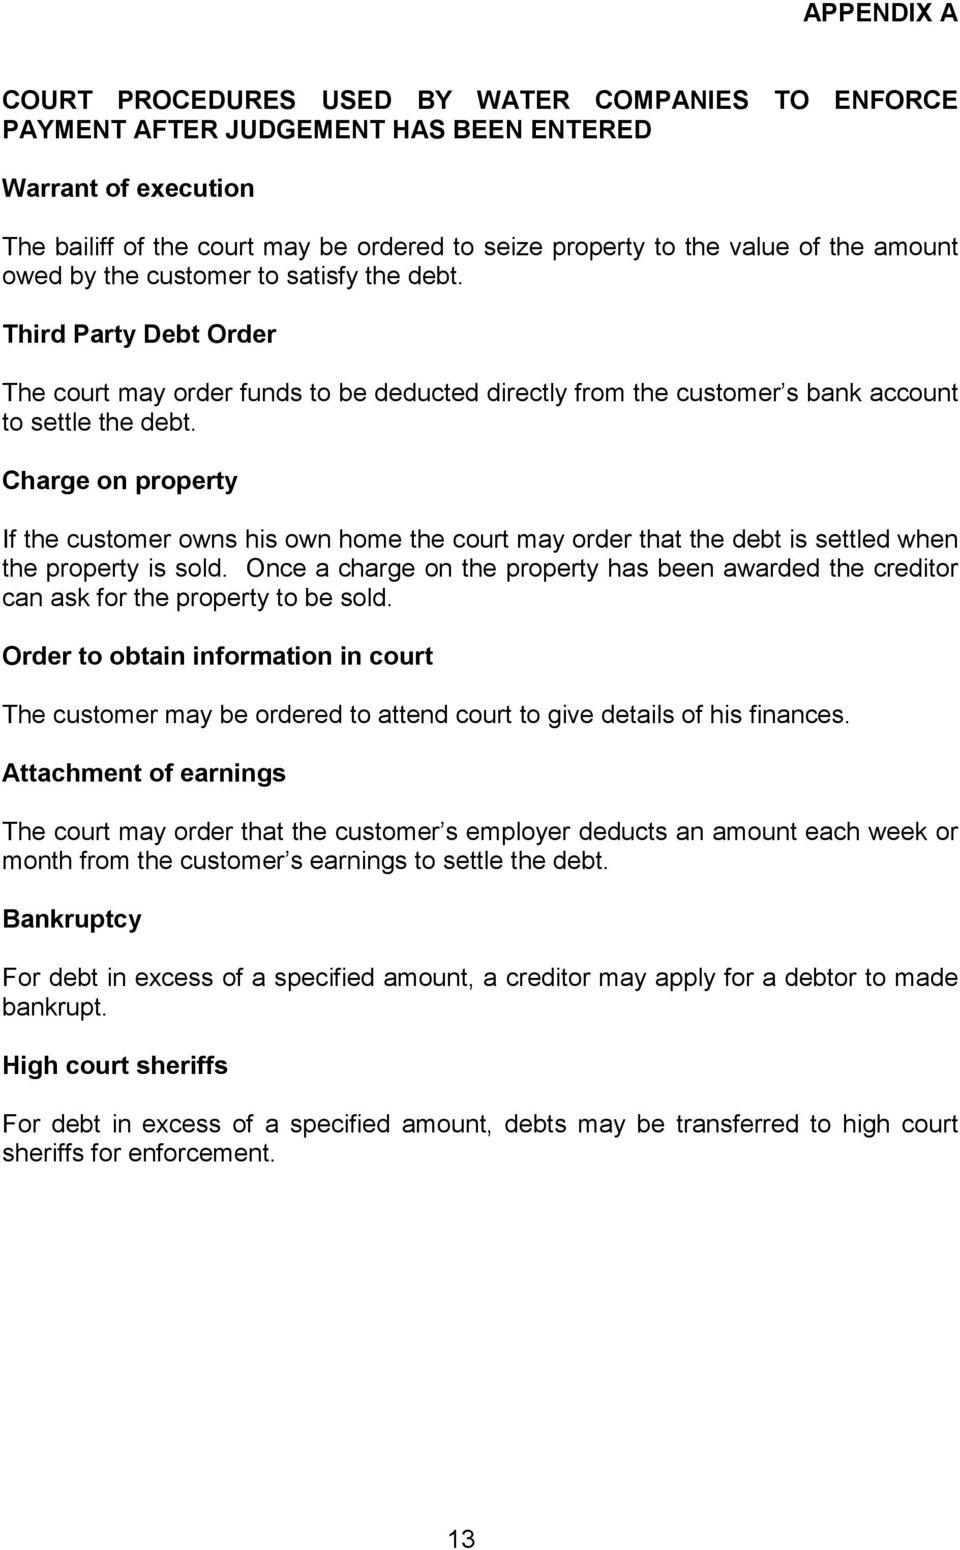 Charge on property If the customer owns his own home the court may order that the debt is settled when the property is sold.